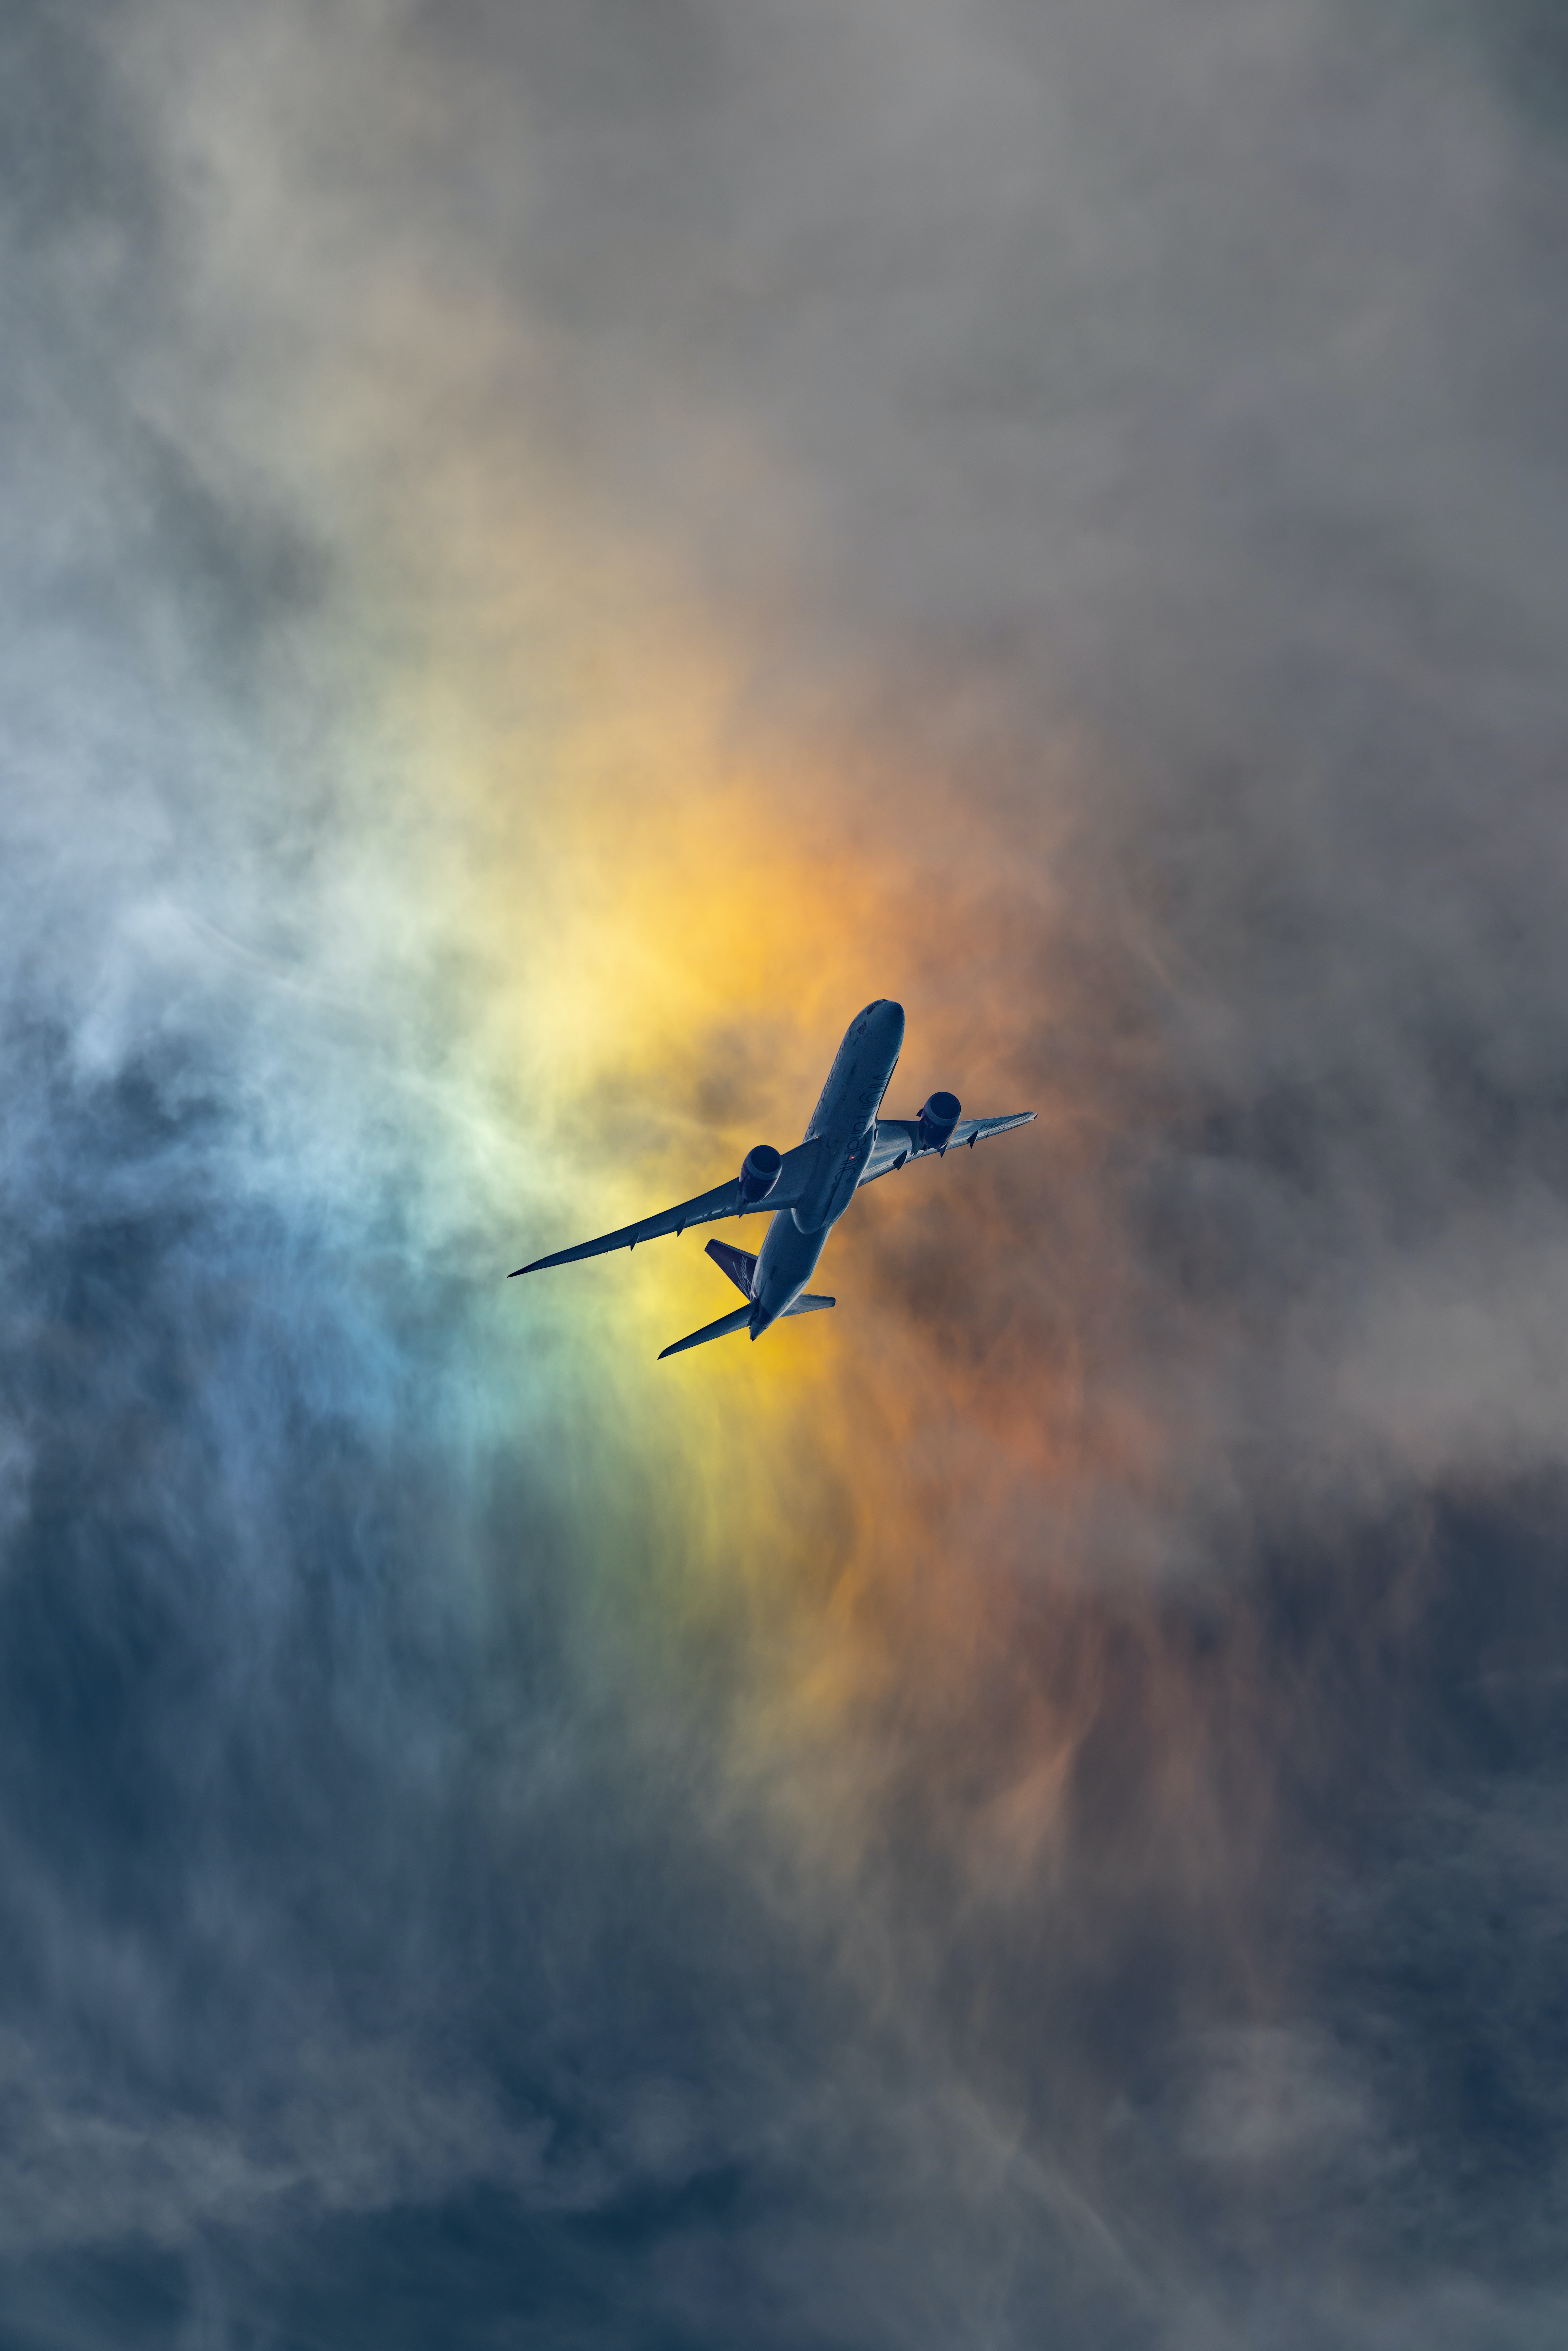 photo of white airplane under cloudy sky